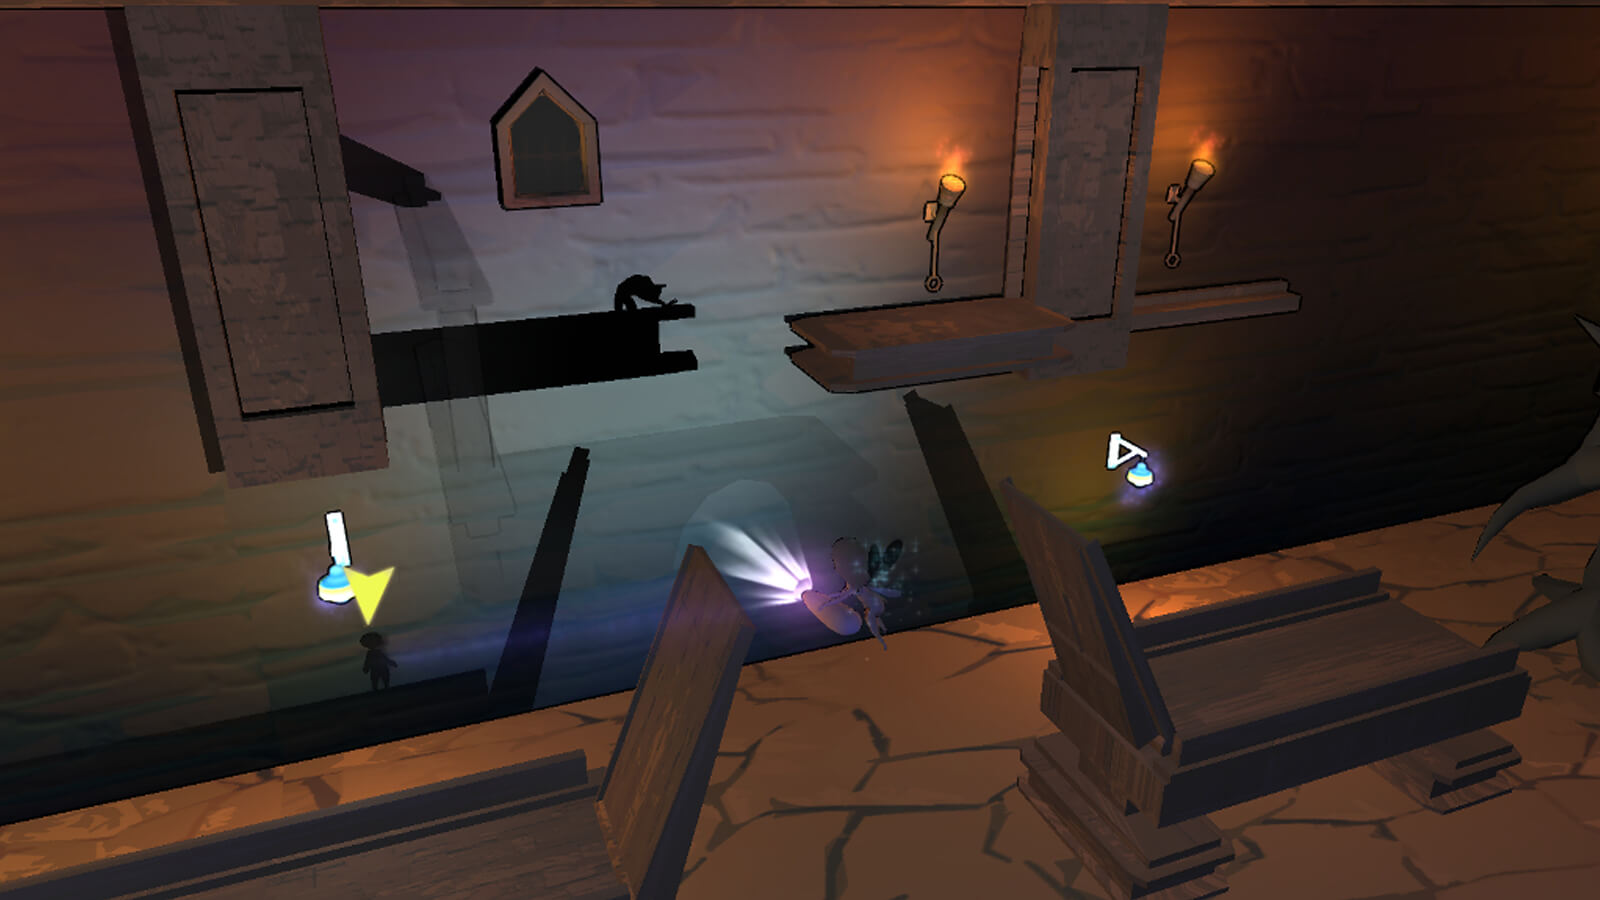 The player's fairy character illuminates a drawbridge and shelf creating shadows against the wall behind